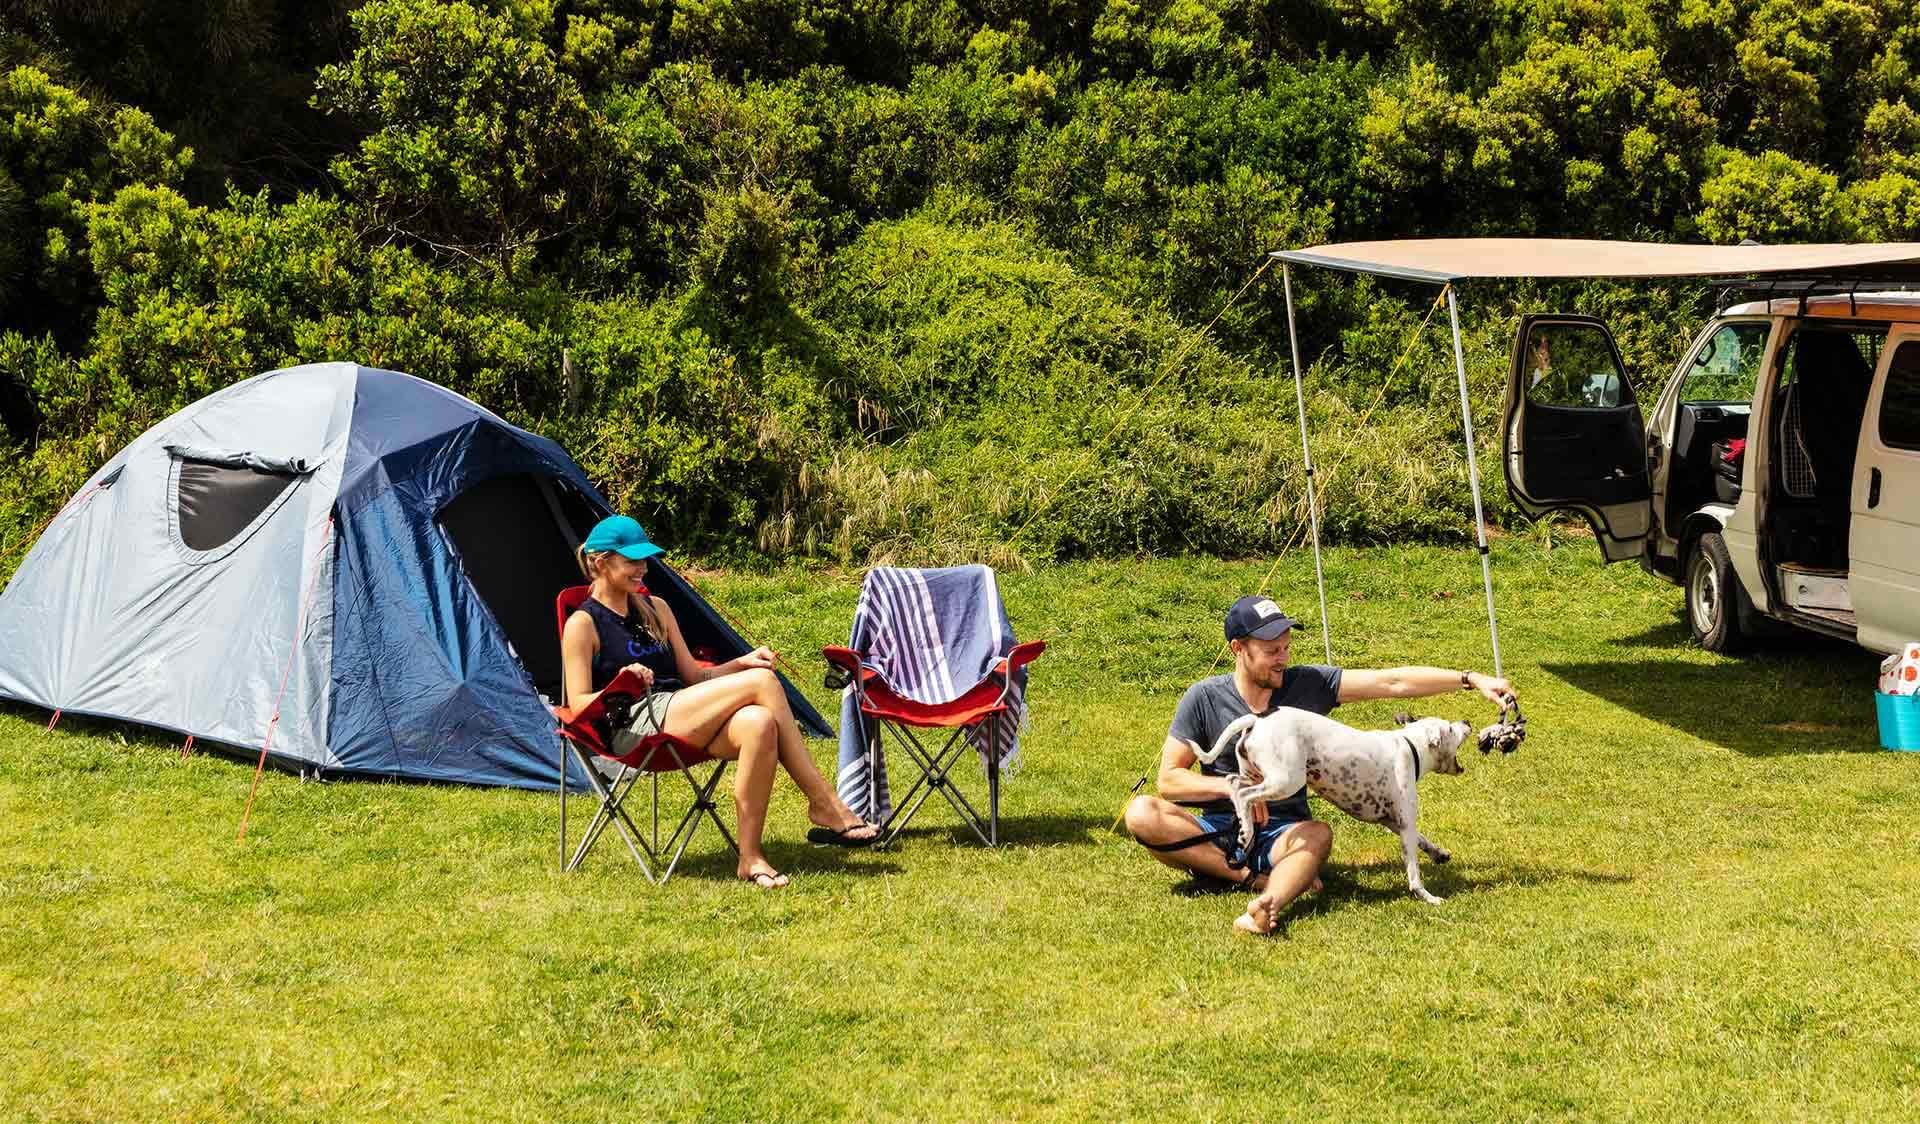 A couple in their thirties play with their dog at Johanna Beach Campground next to their tent and campervan.